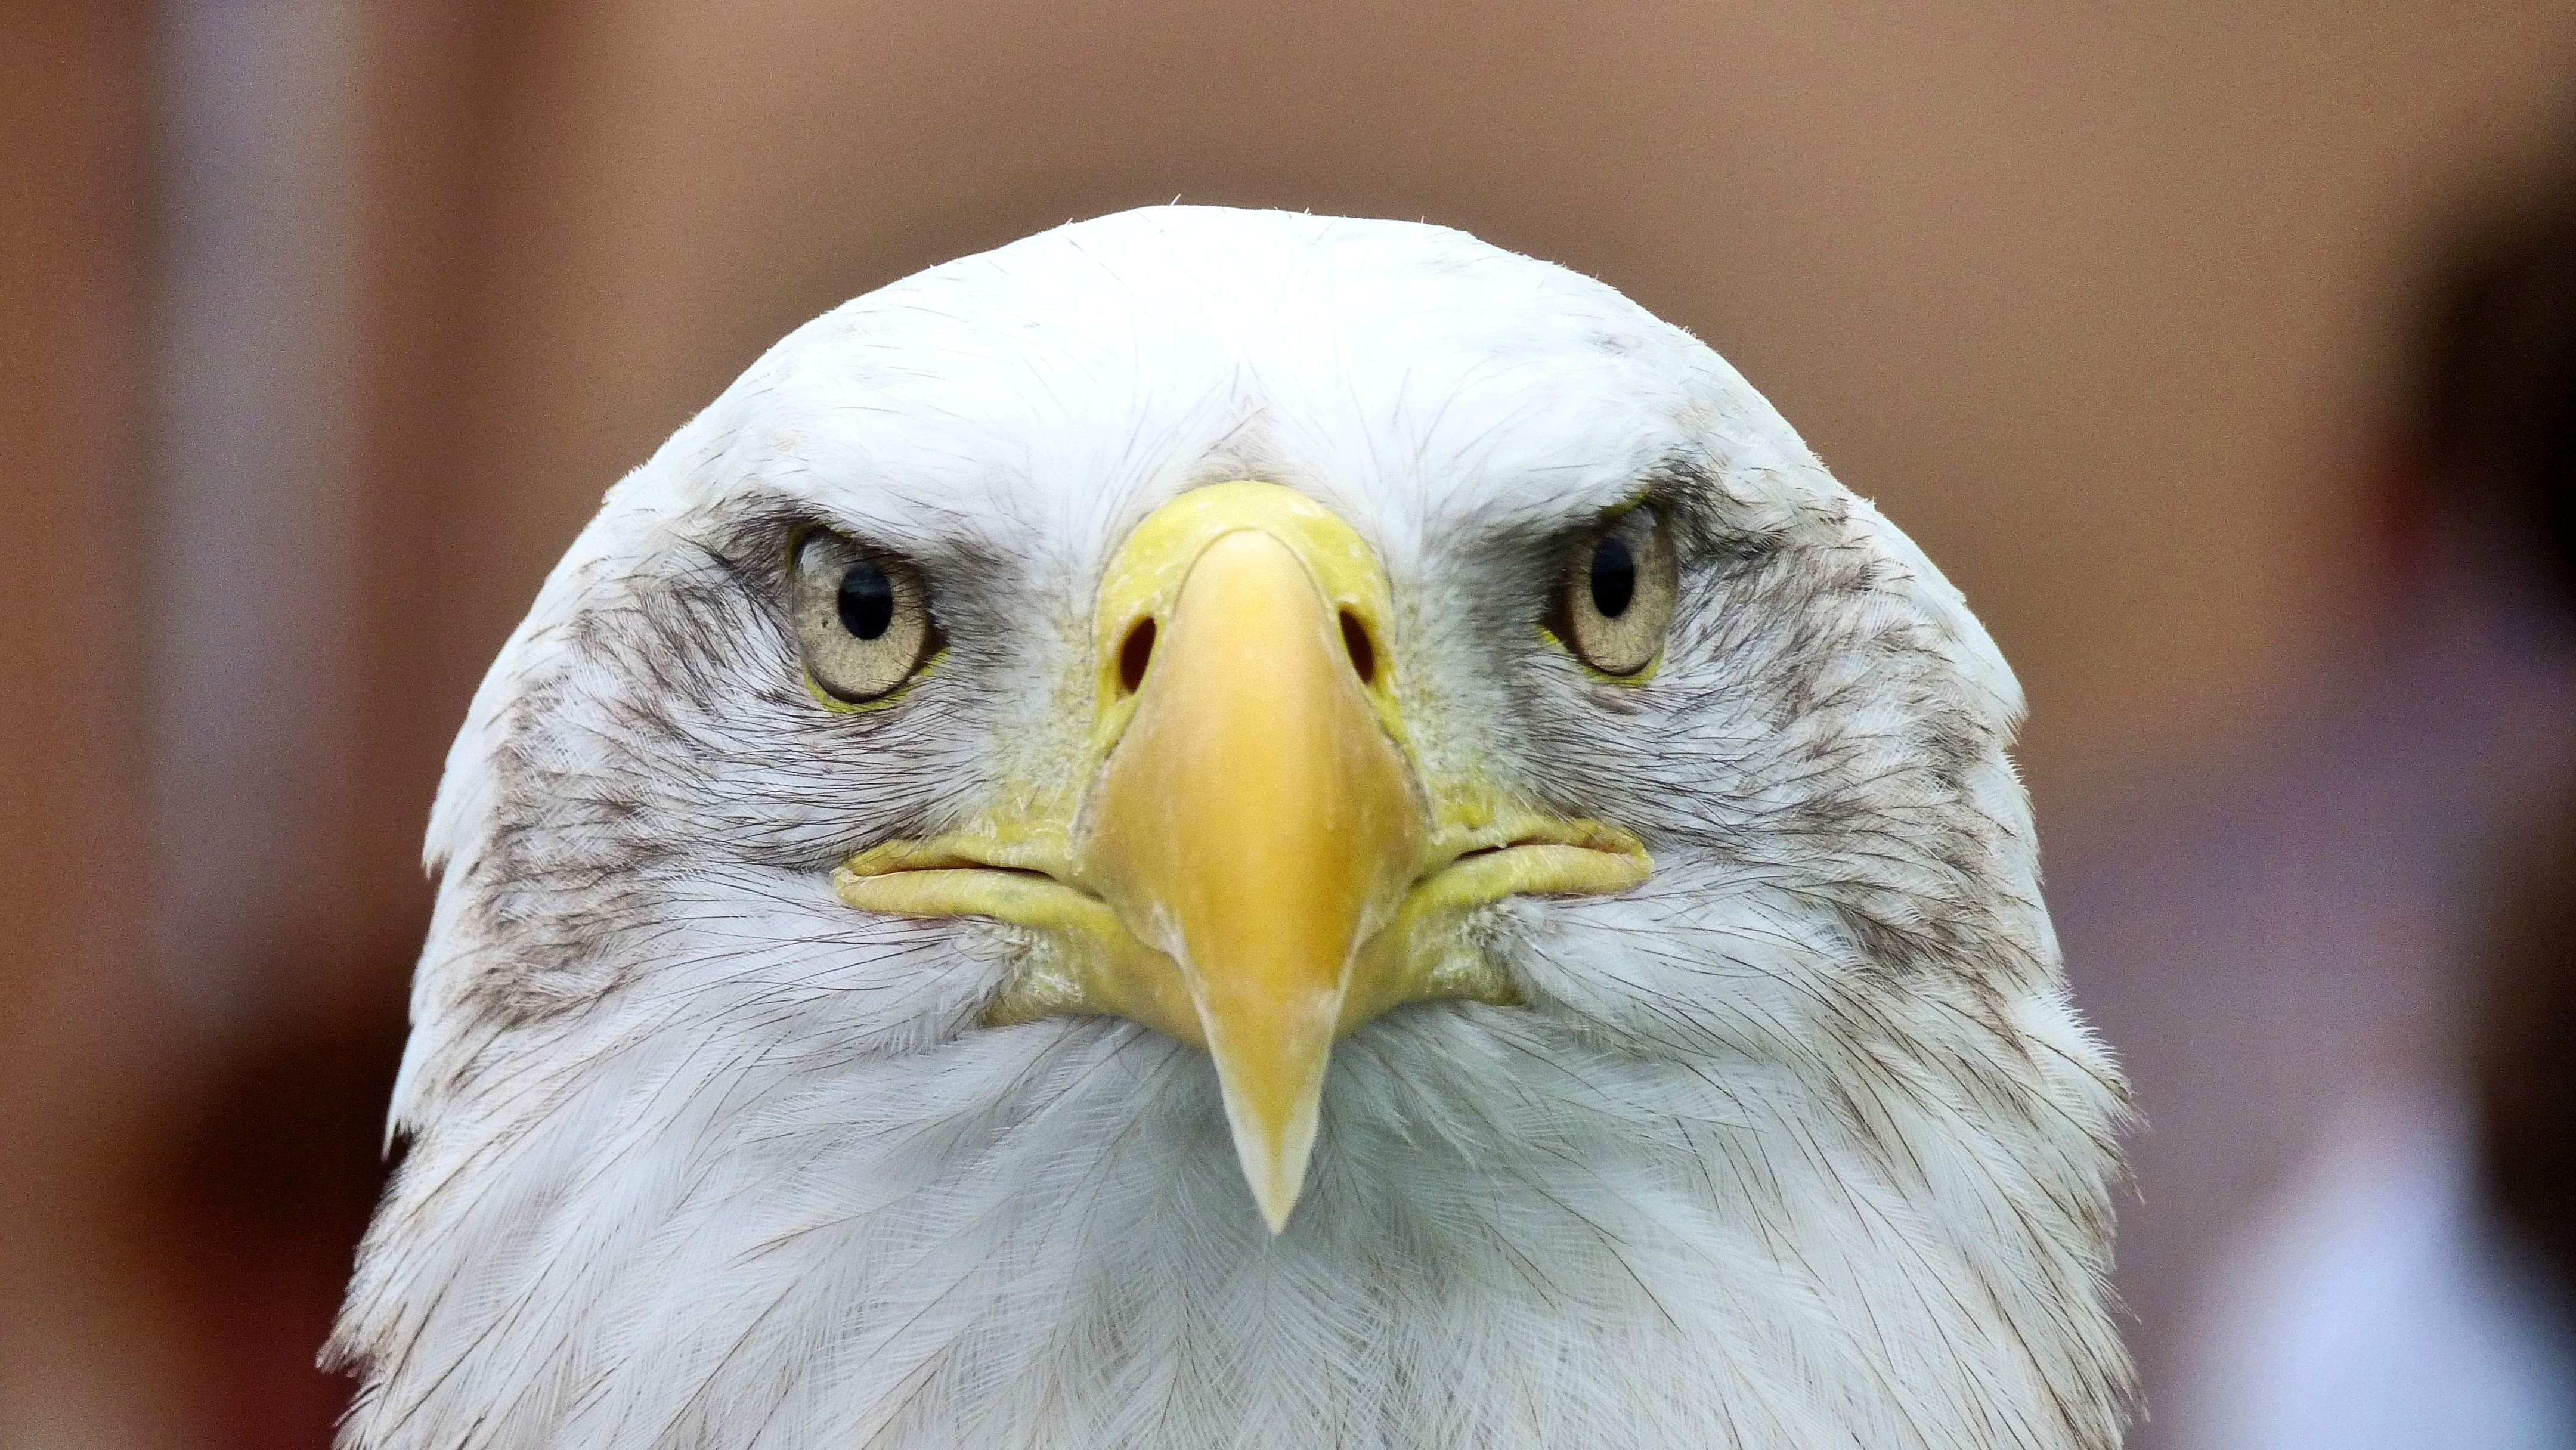 117080 download wallpaper Animals, Bald Eagle, White-Headed Eagle, Eagle, Predator, Bird screensavers and pictures for free